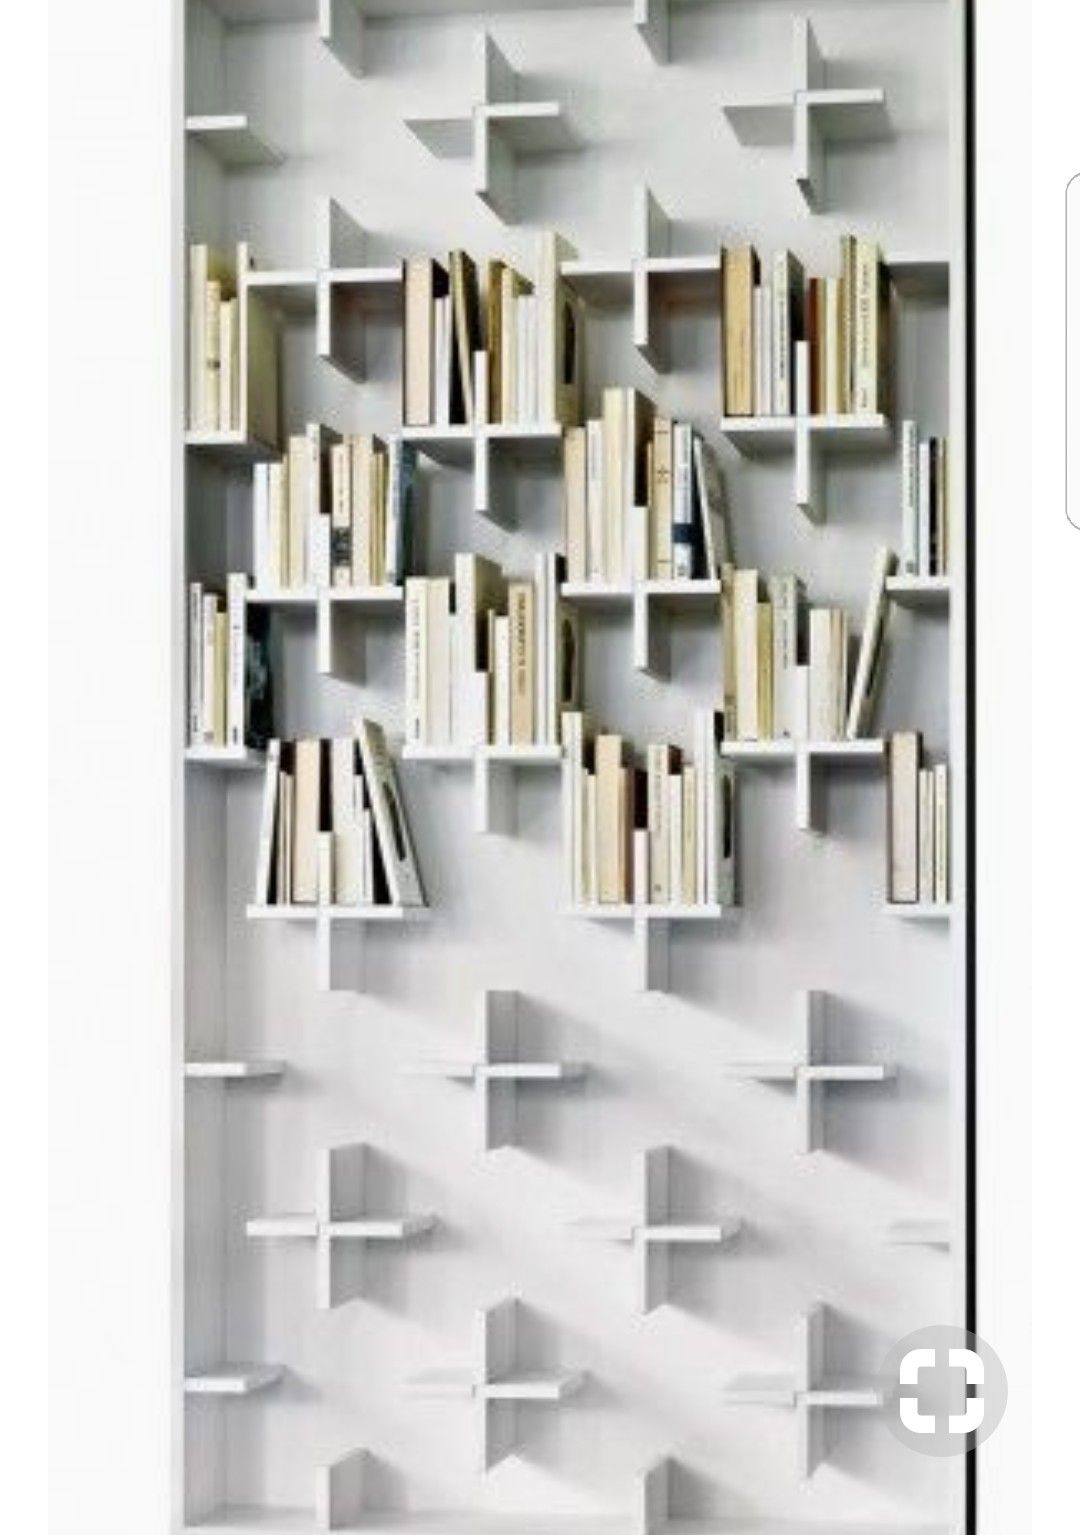 Unusual Bookshelf With Images Shelves Minimalist Bookshelves Bookshelf Design